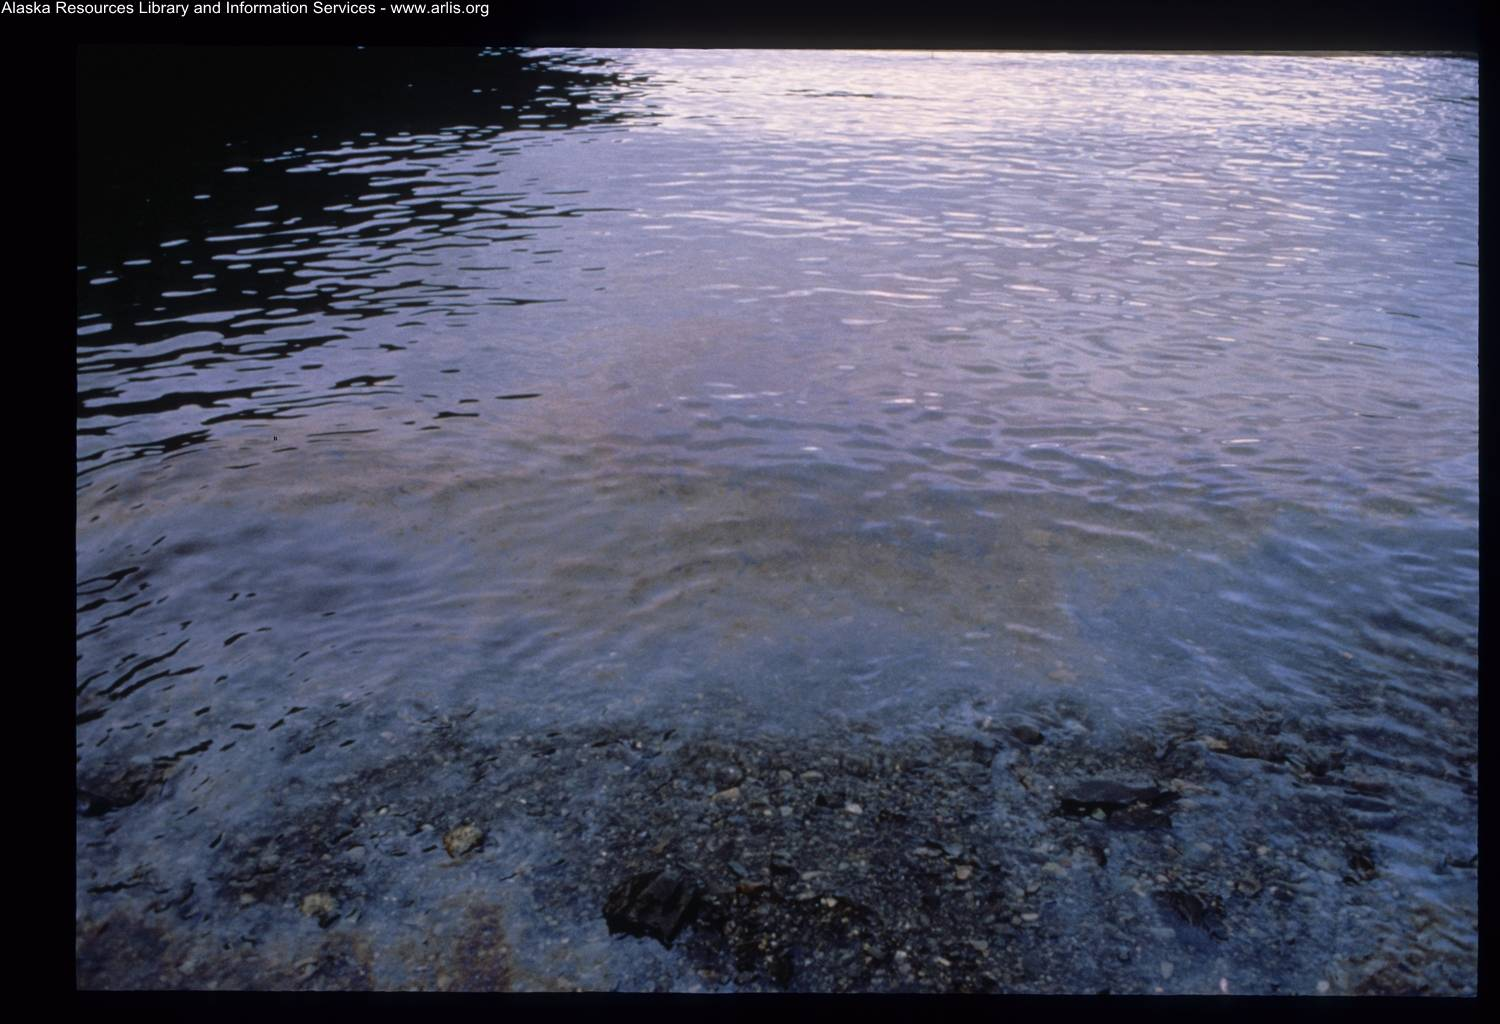 Oil sheen bleeds from the beach at Herring Bay on Knight Island on Dec. 7, 1989. (Courtesy Photo / ARLIS Reference)